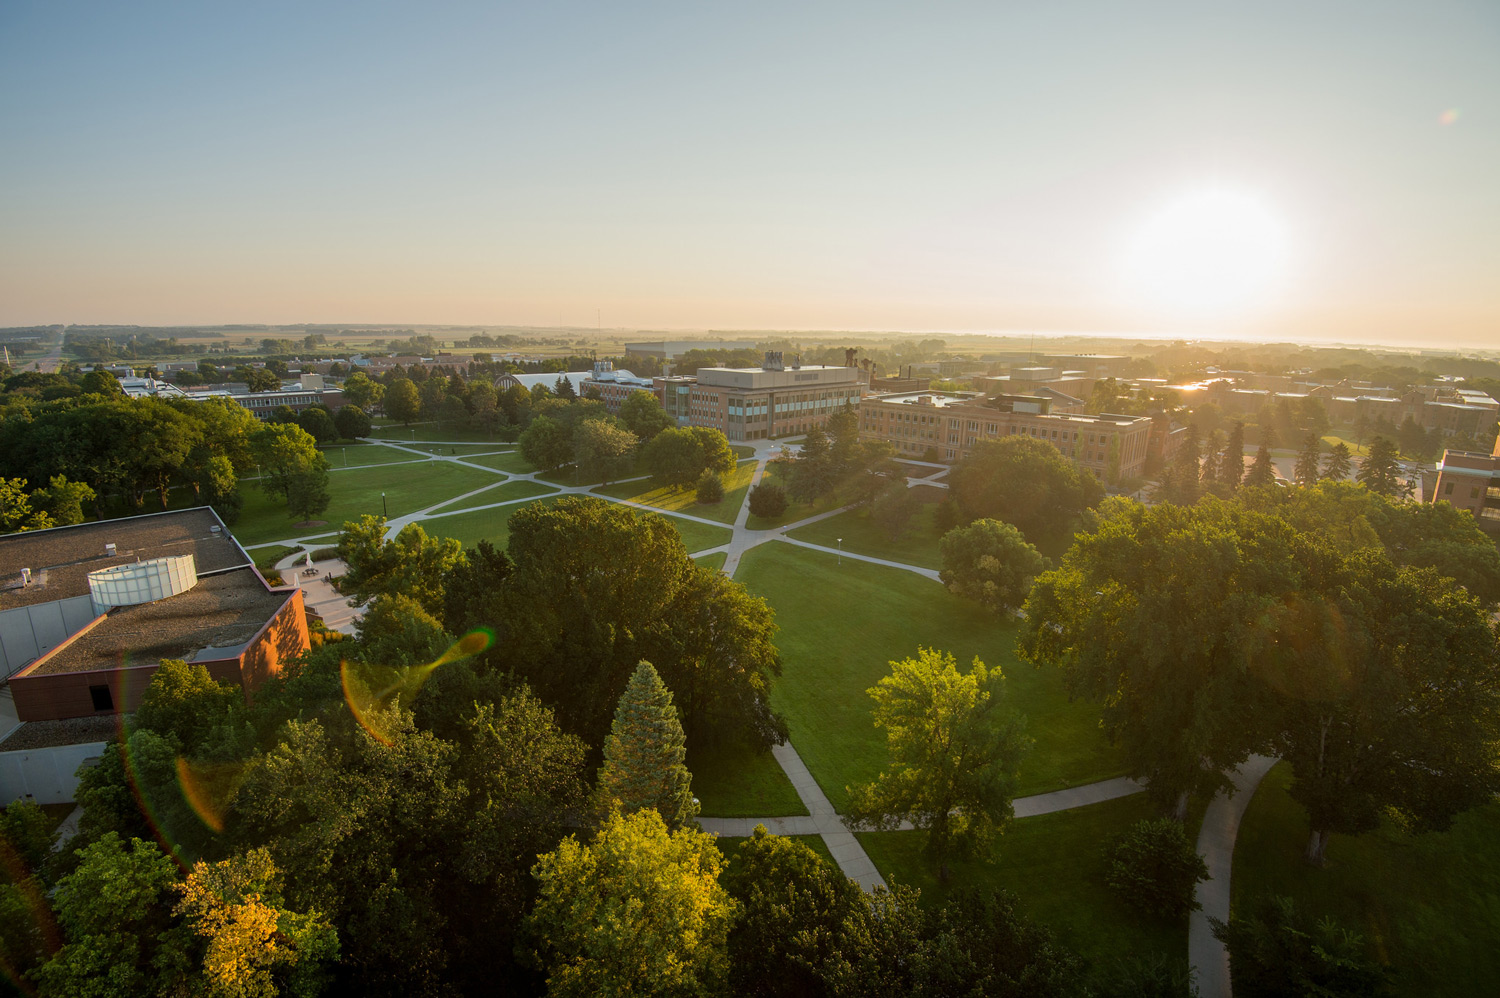 The view of the South Dakota State University campus from the top of the SDSU Coughlin Campanile.